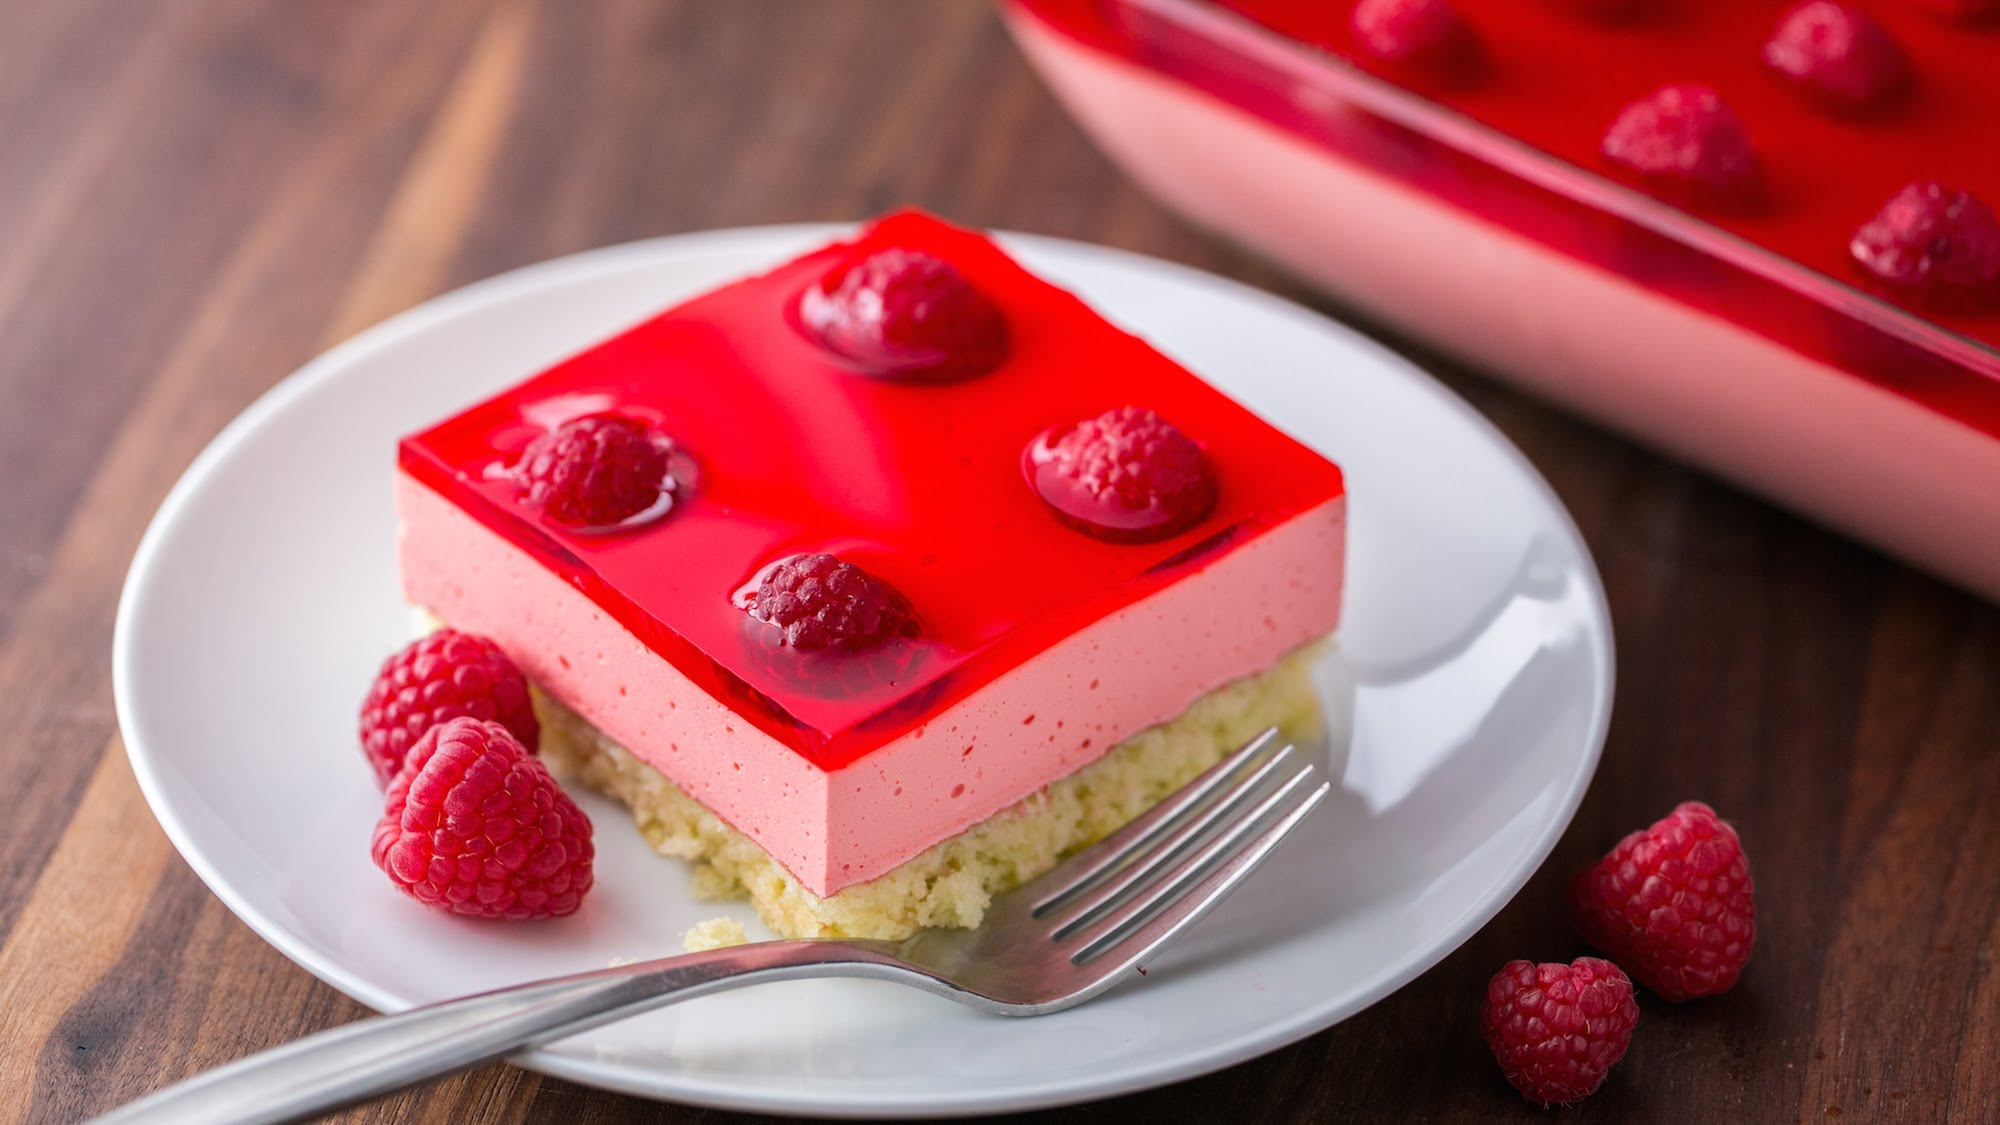 Shuman S Bakery Jelly Cake Recipe: Raspberry Jelly Cake Recipe